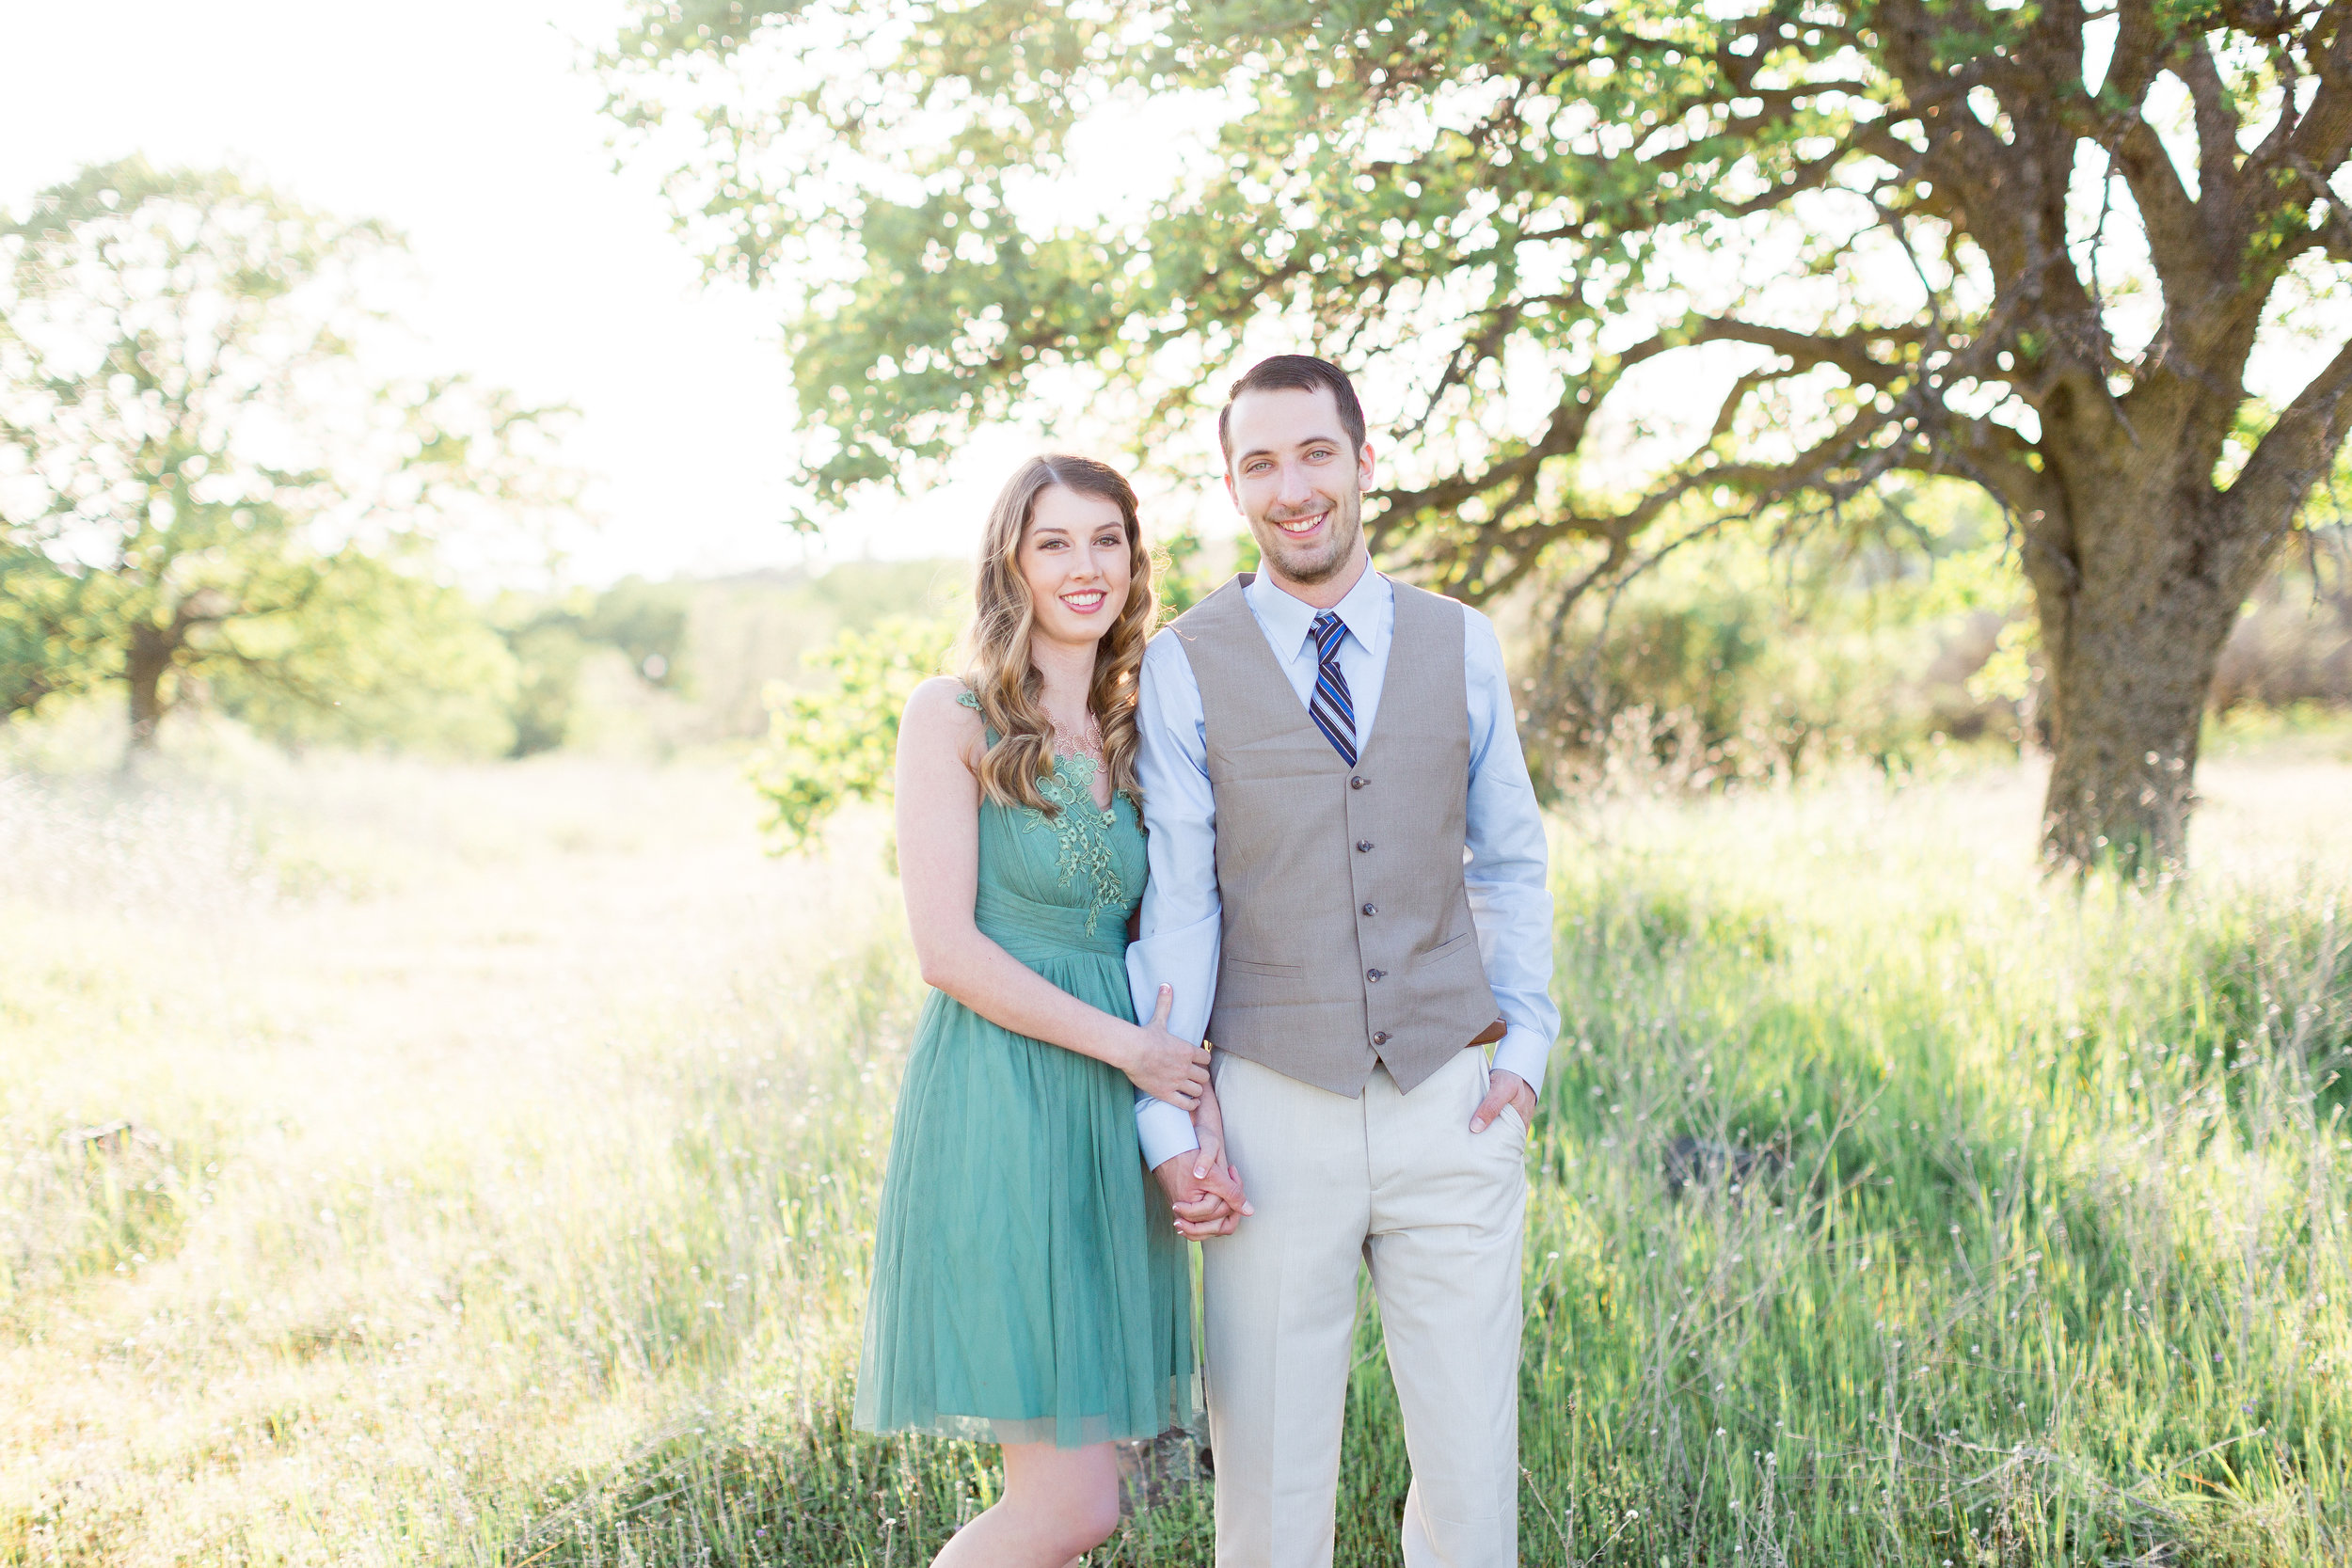 upper-bidwell-chico-california-engagement-session-trebrittany-8.jpg